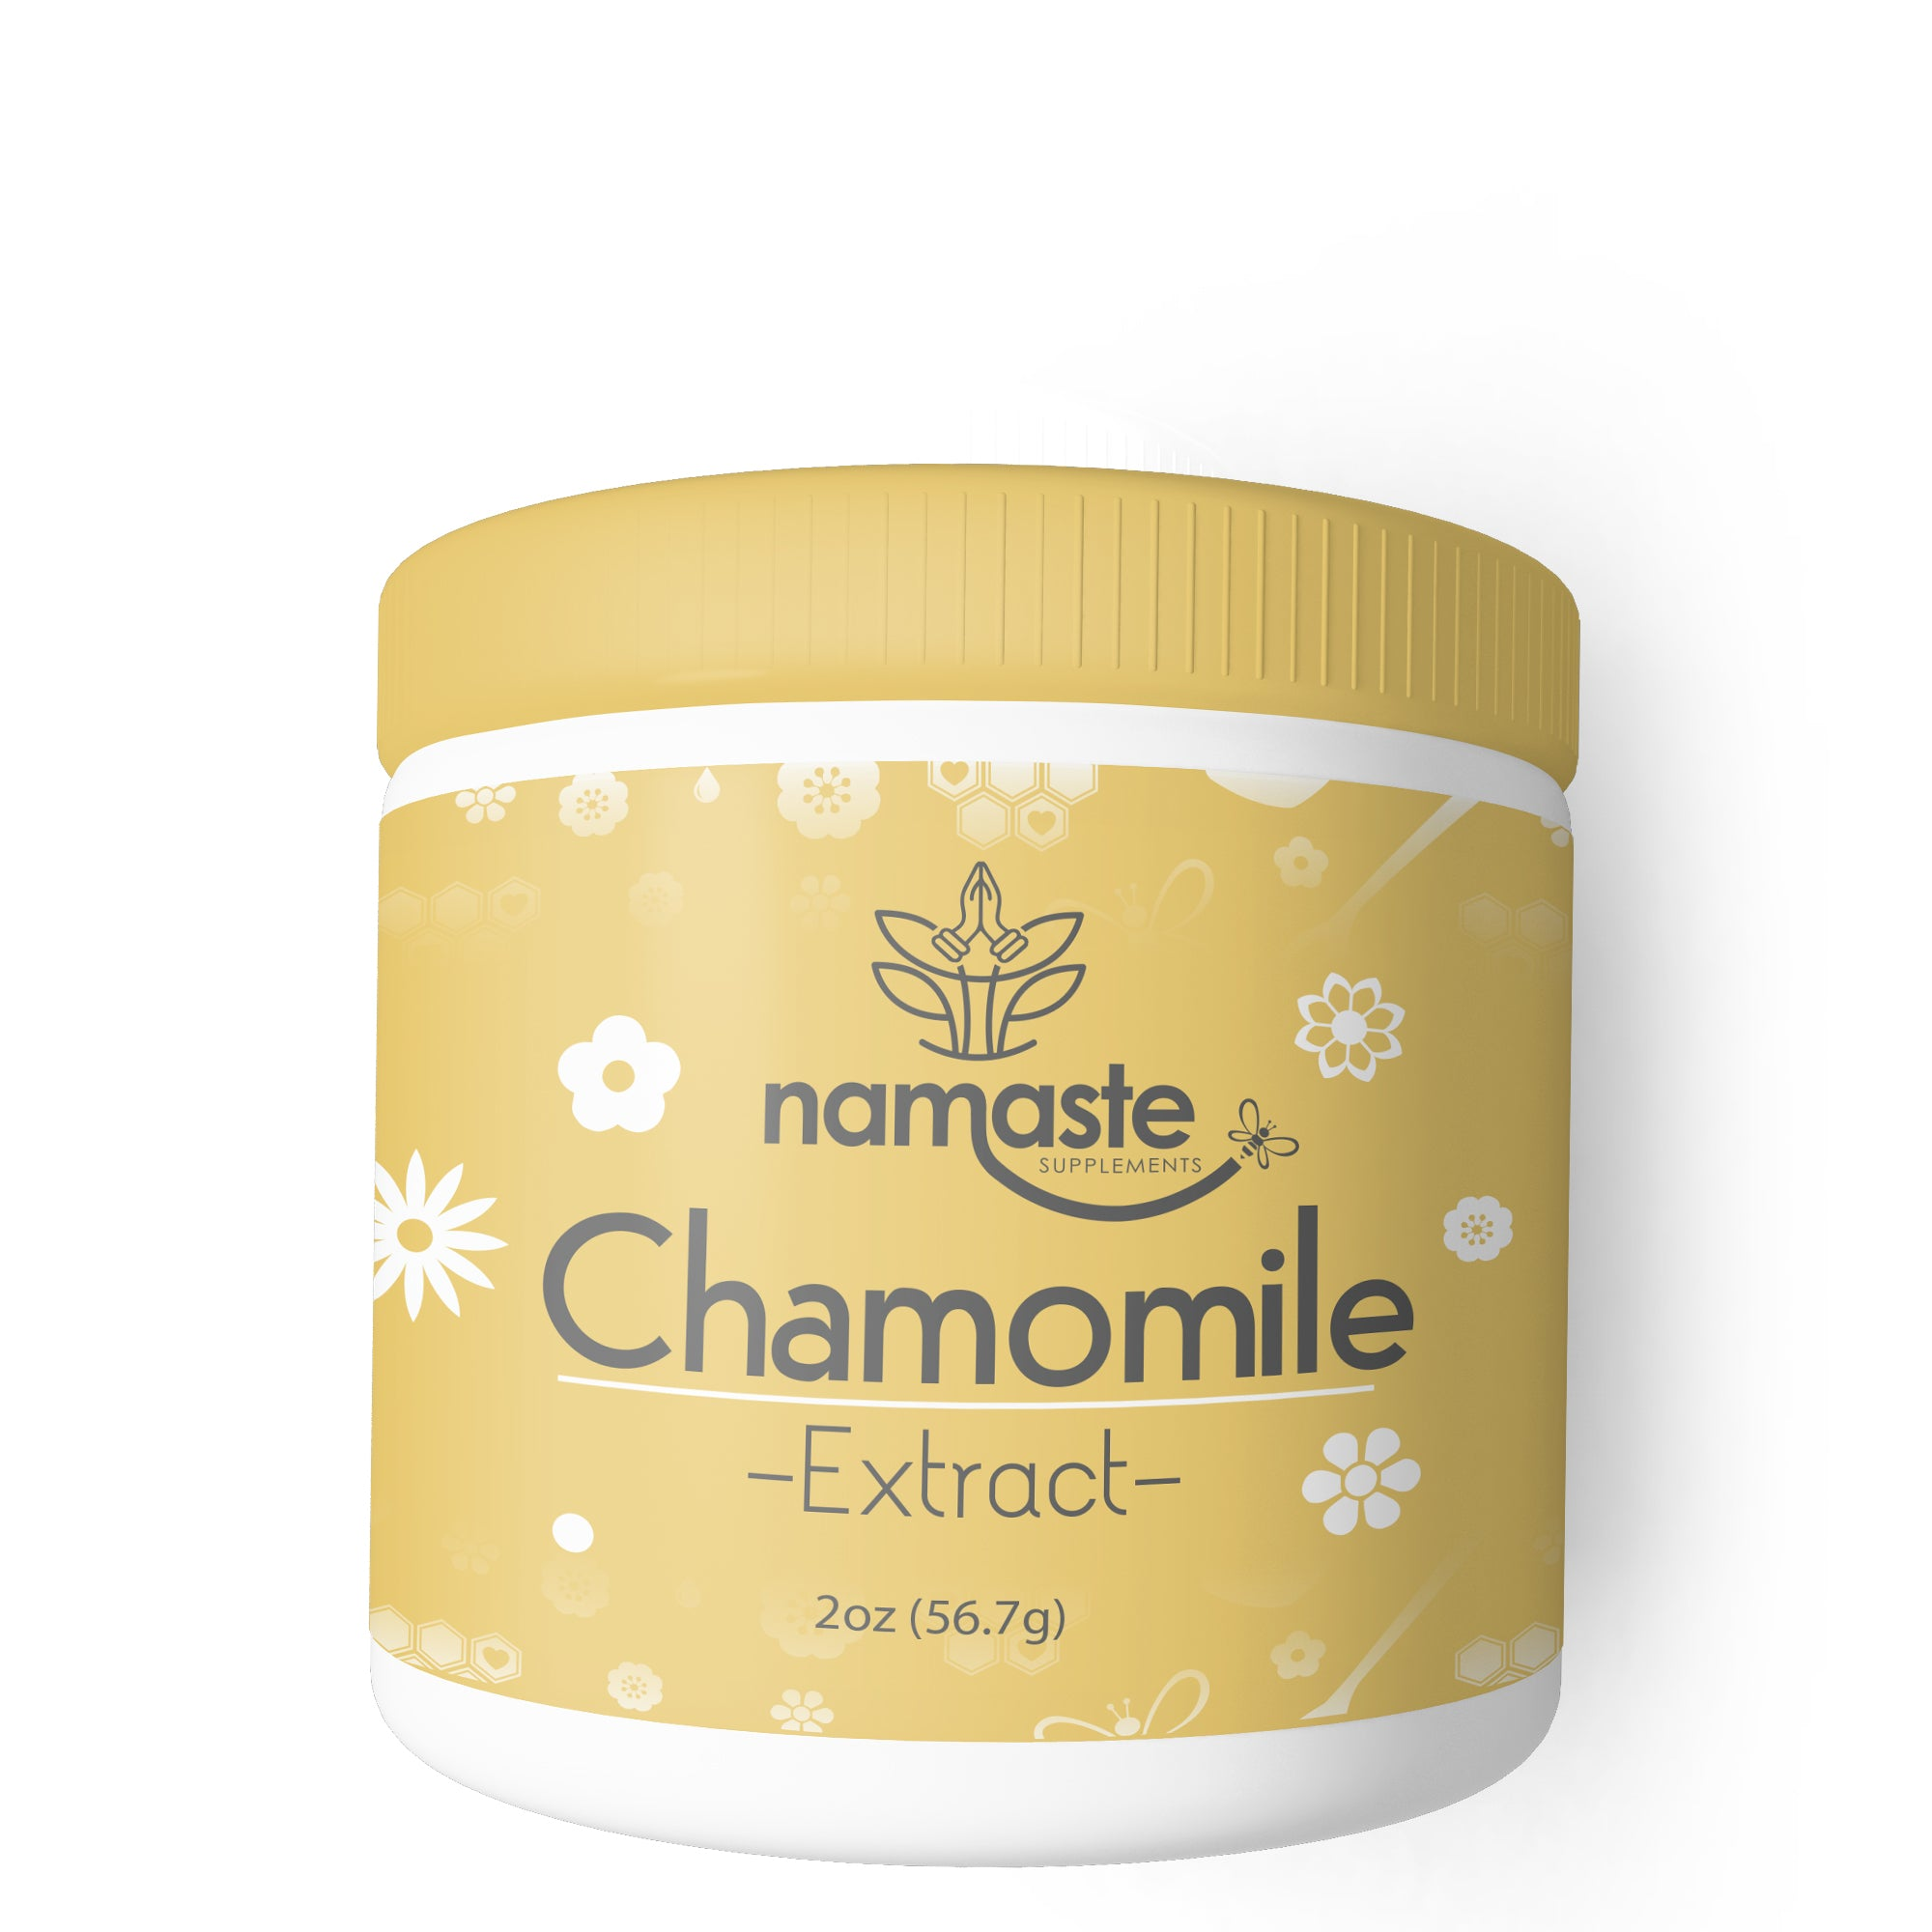 Namaste Supplements - Chamomile Extract